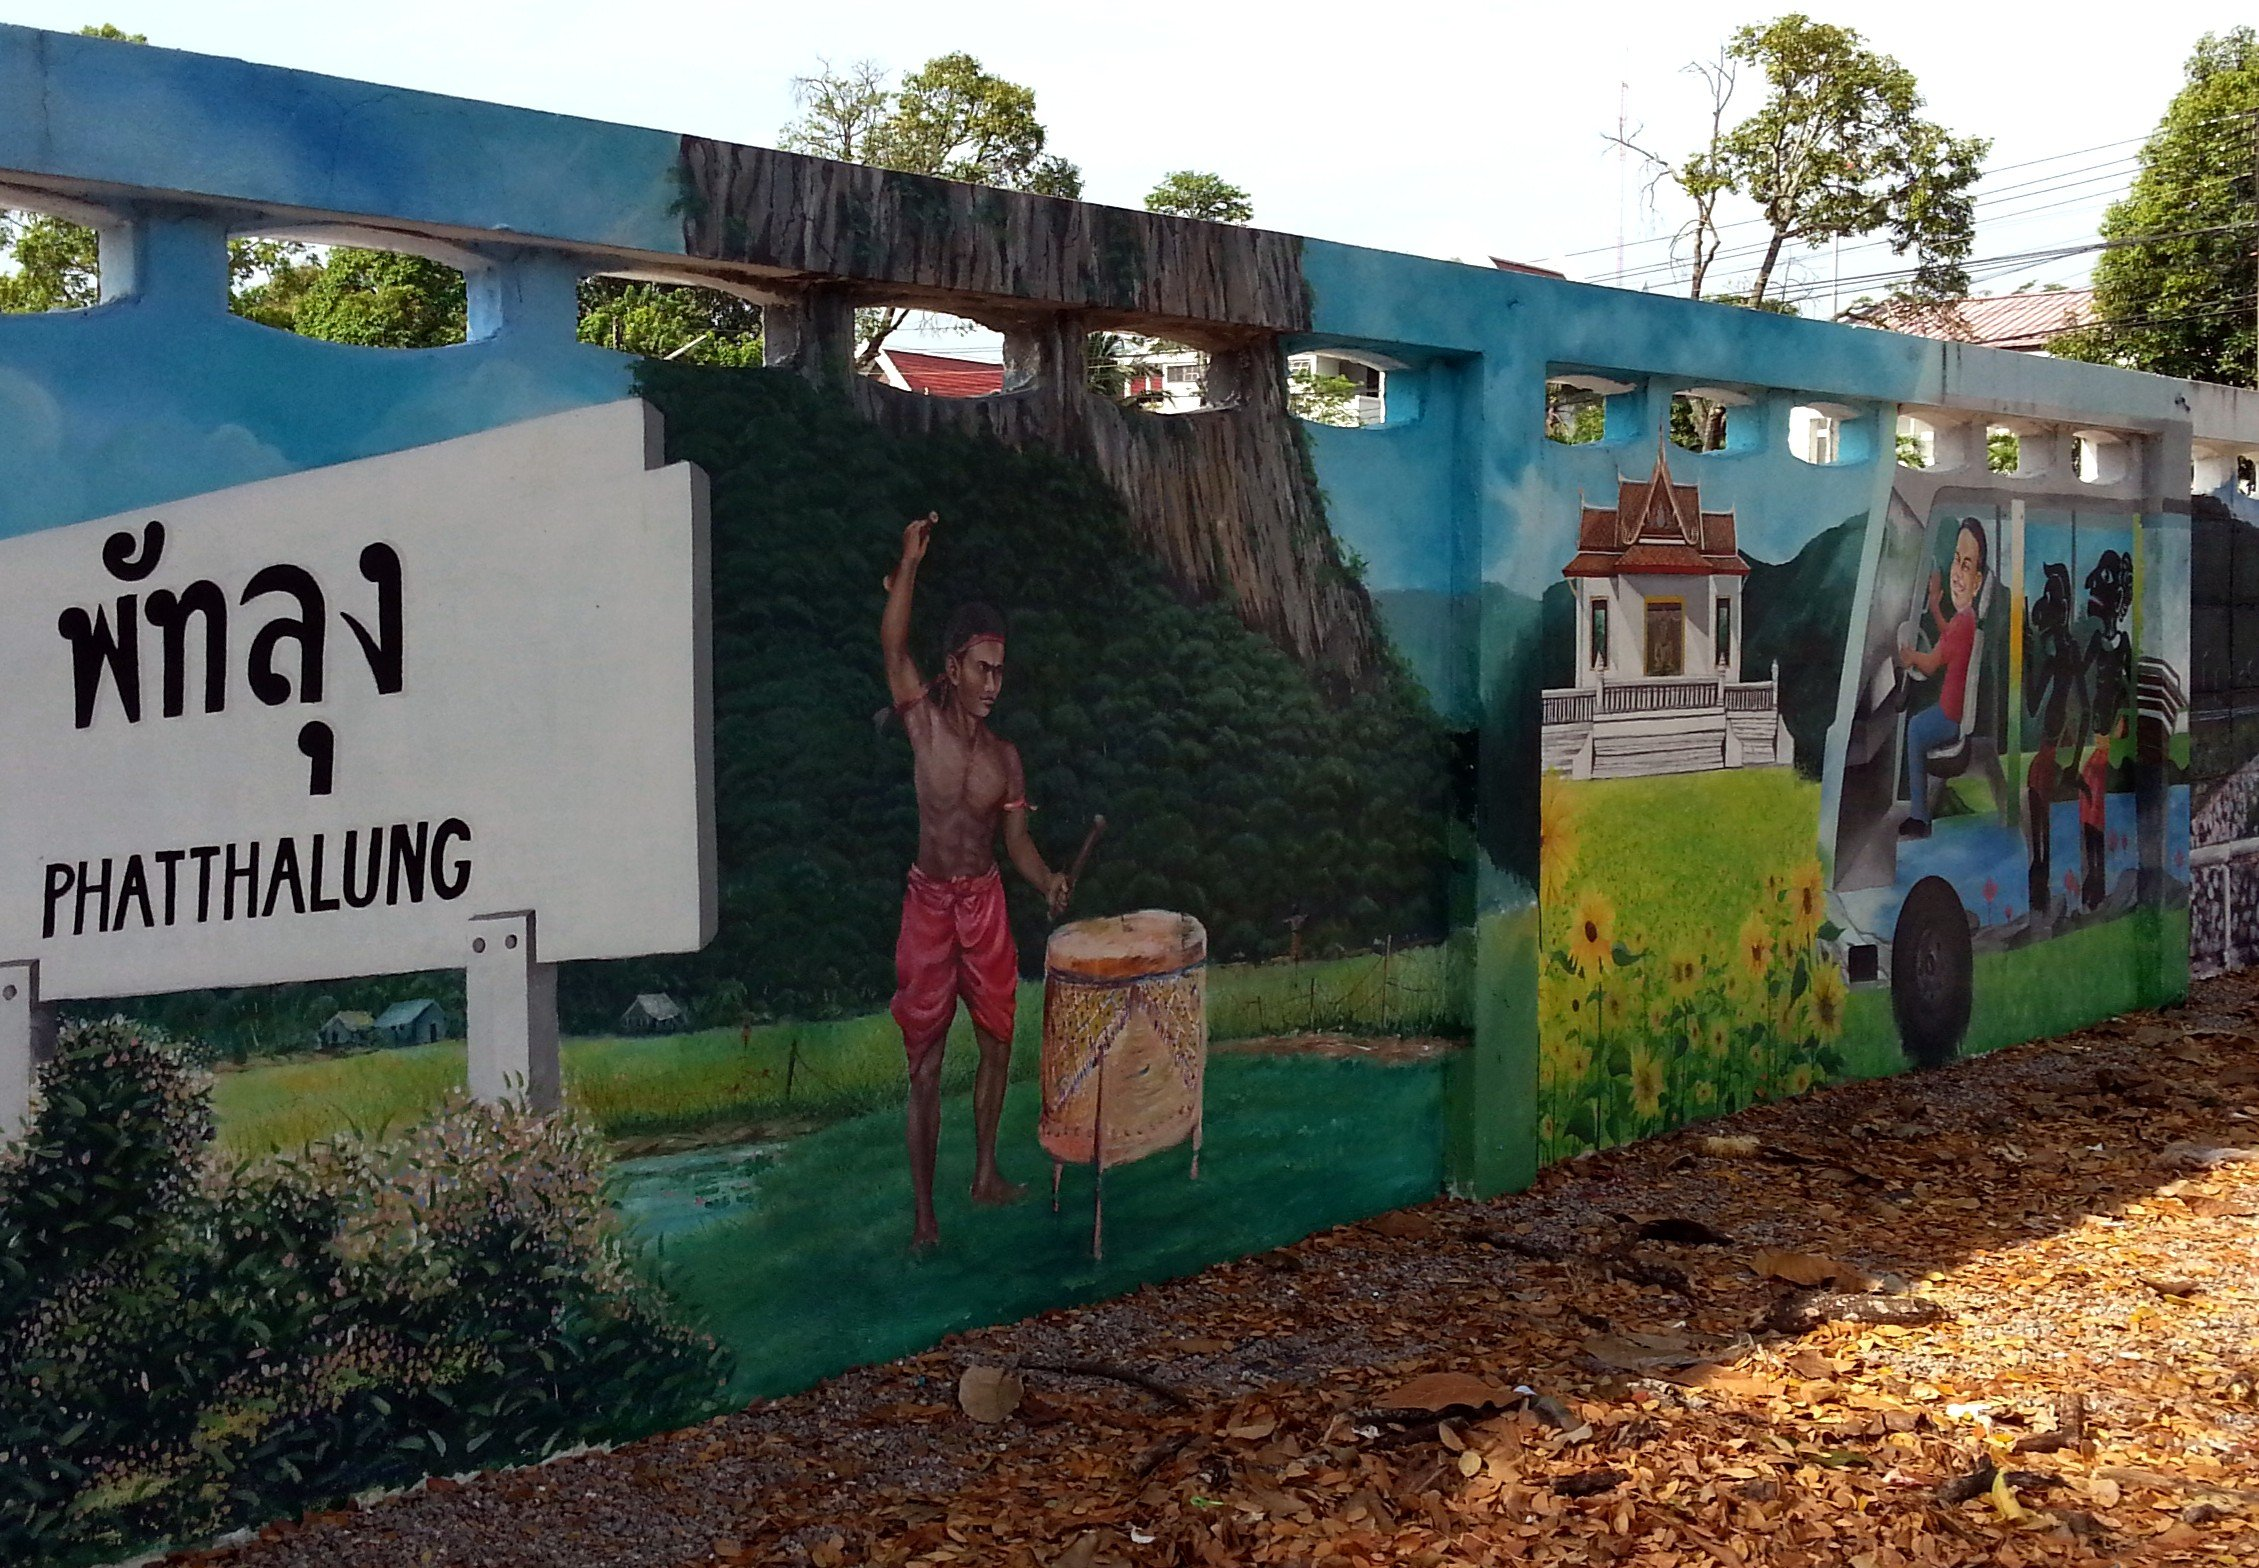 Phatthalung street art is heavily influenced by Southern Thai culture